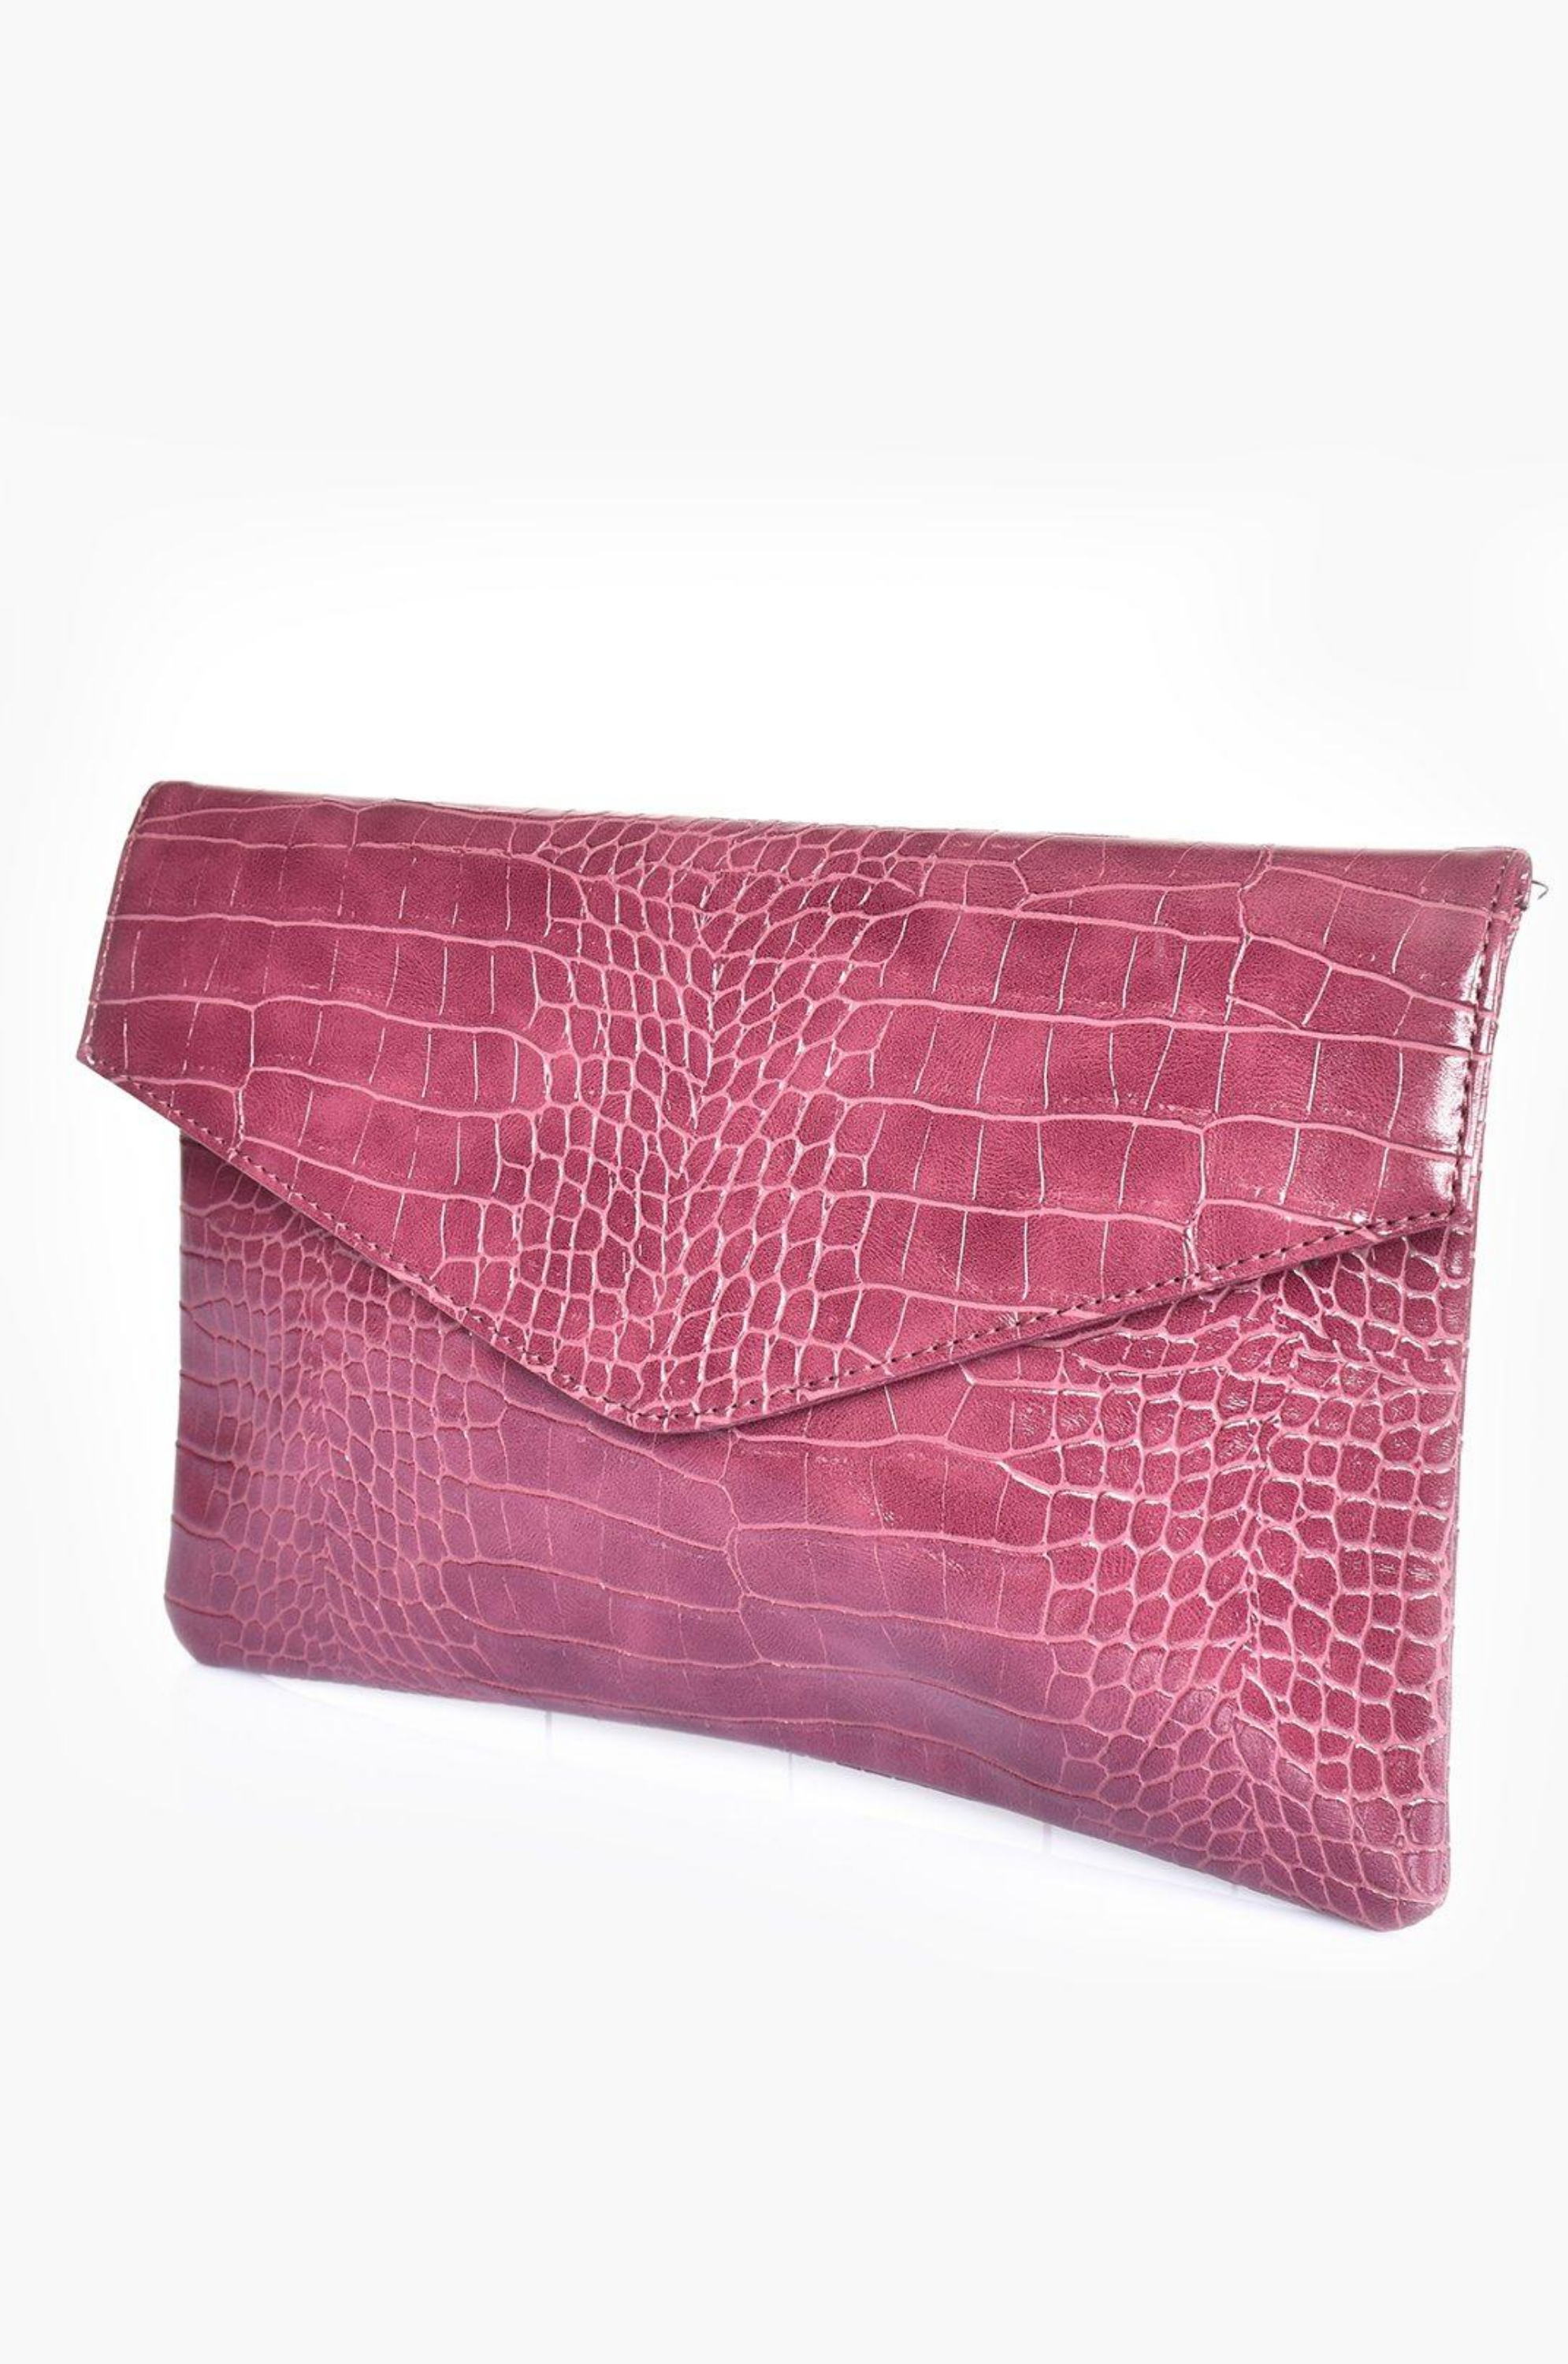 Mulberry Envelope Clutch